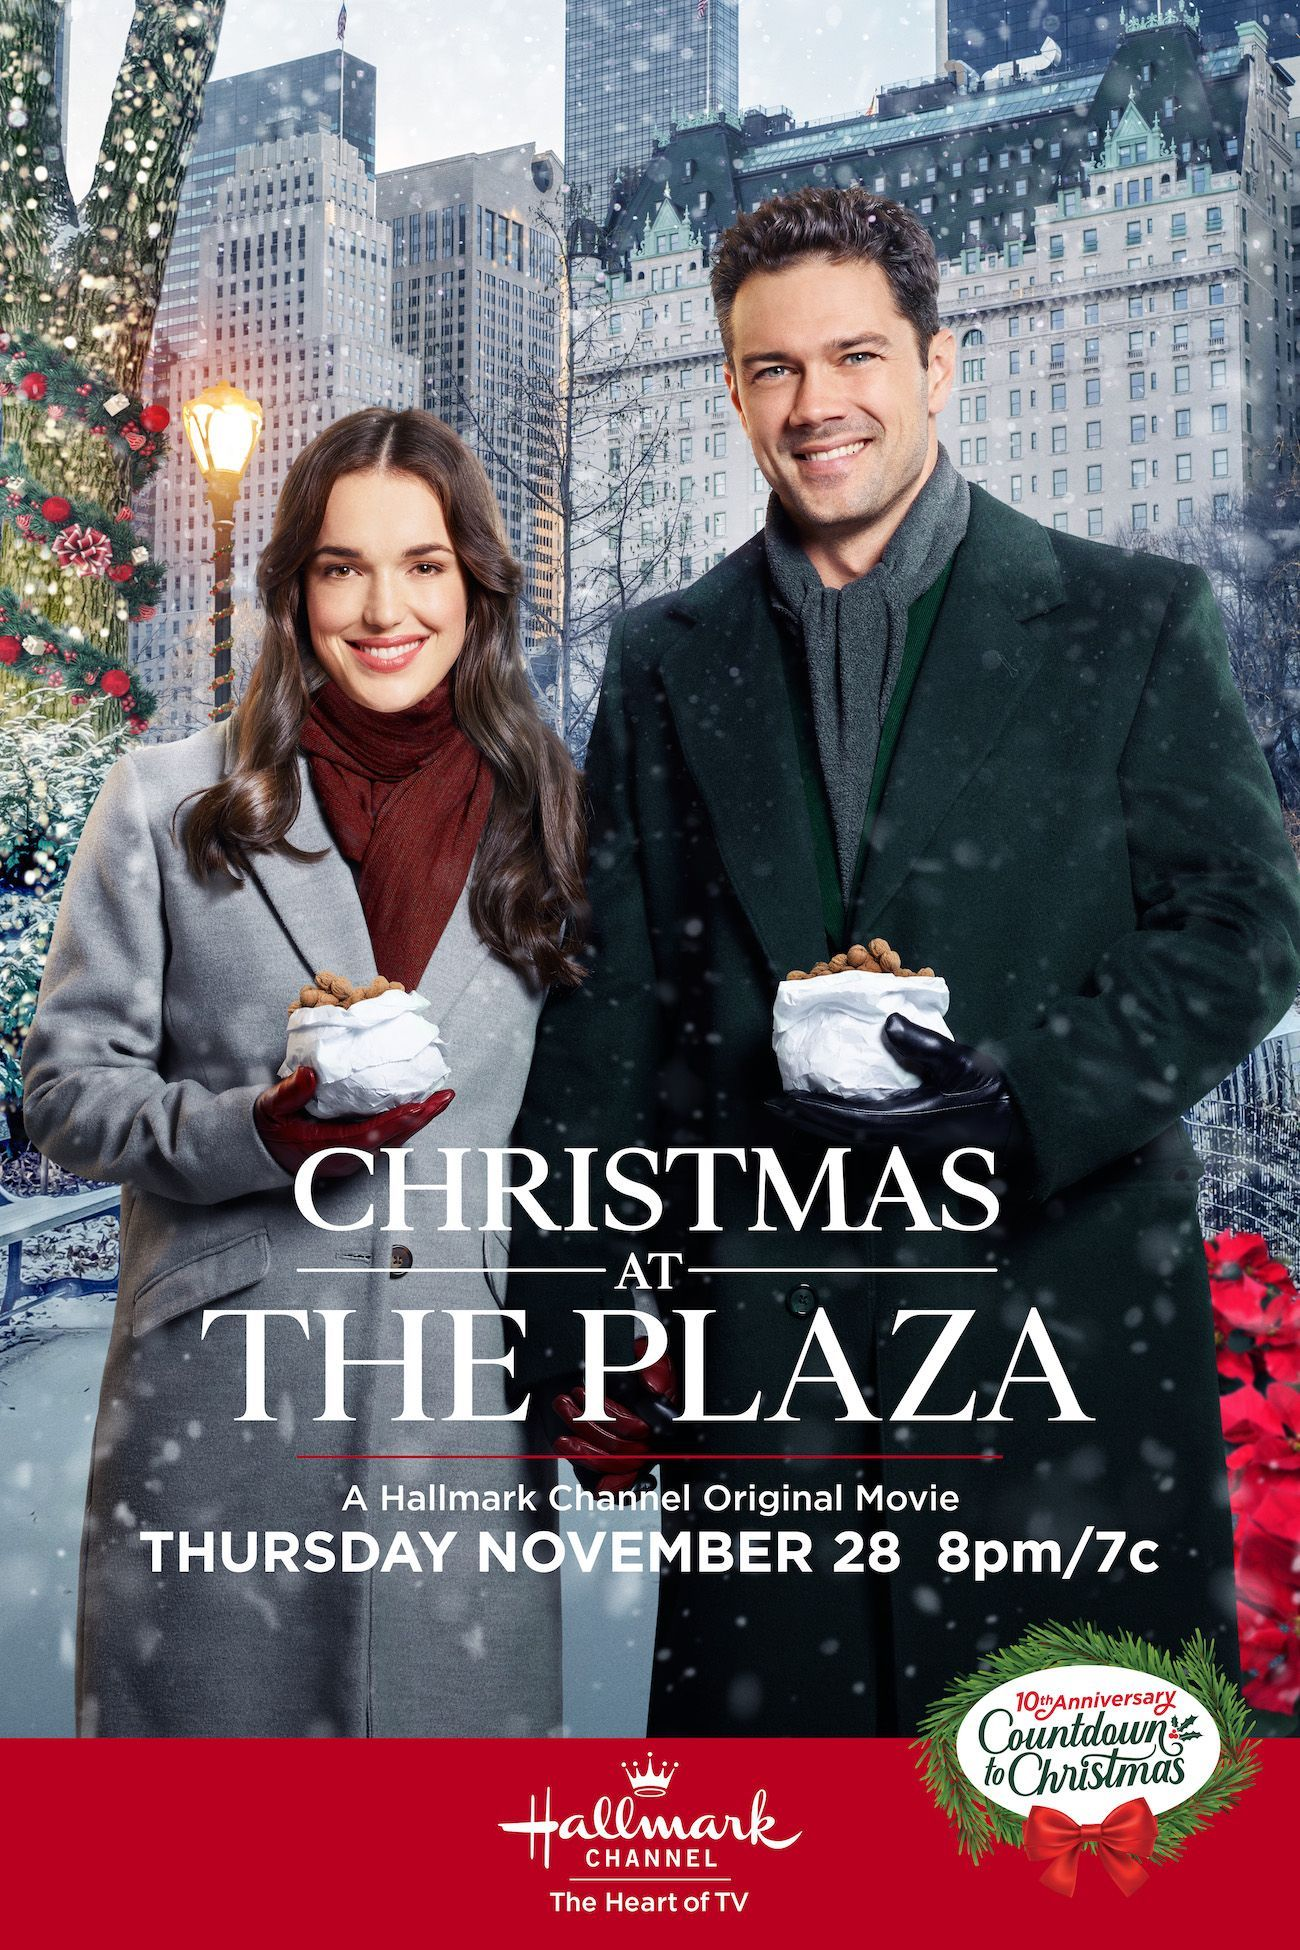 On November 28 Spend Christmas At The Plaza With Ryan Paevey And Elizabeth Hens Hallmark Christmas Movies Hallmark Channel Christmas Movies Christmas Movies